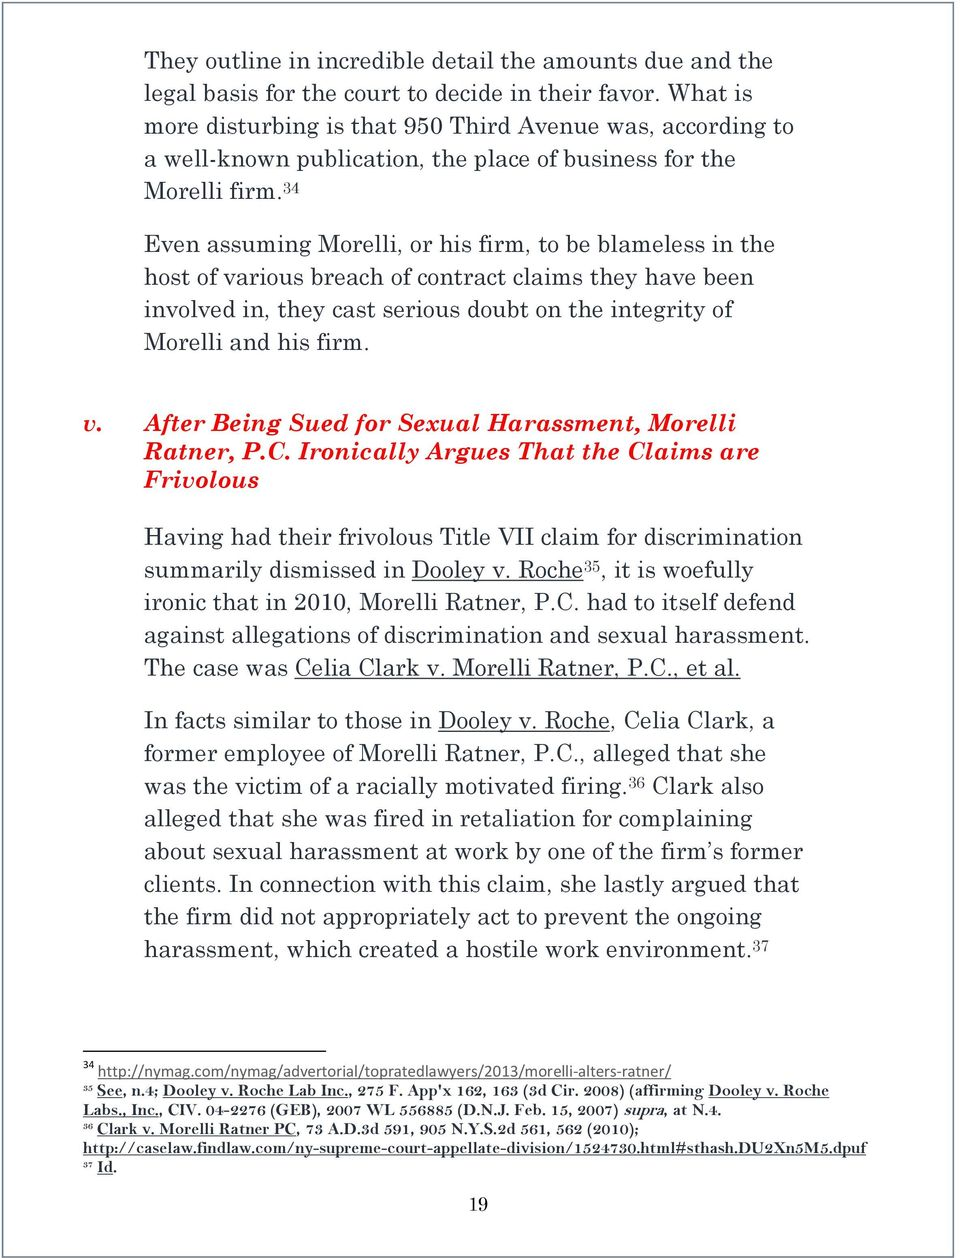 34 Even assuming Morelli, or his firm, to be blameless in the host of various breach of contract claims they have been involved in, they cast serious doubt on the integrity of Morelli and his firm. v. After Being Sued for Sexual Harassment, Morelli Ratner, P.